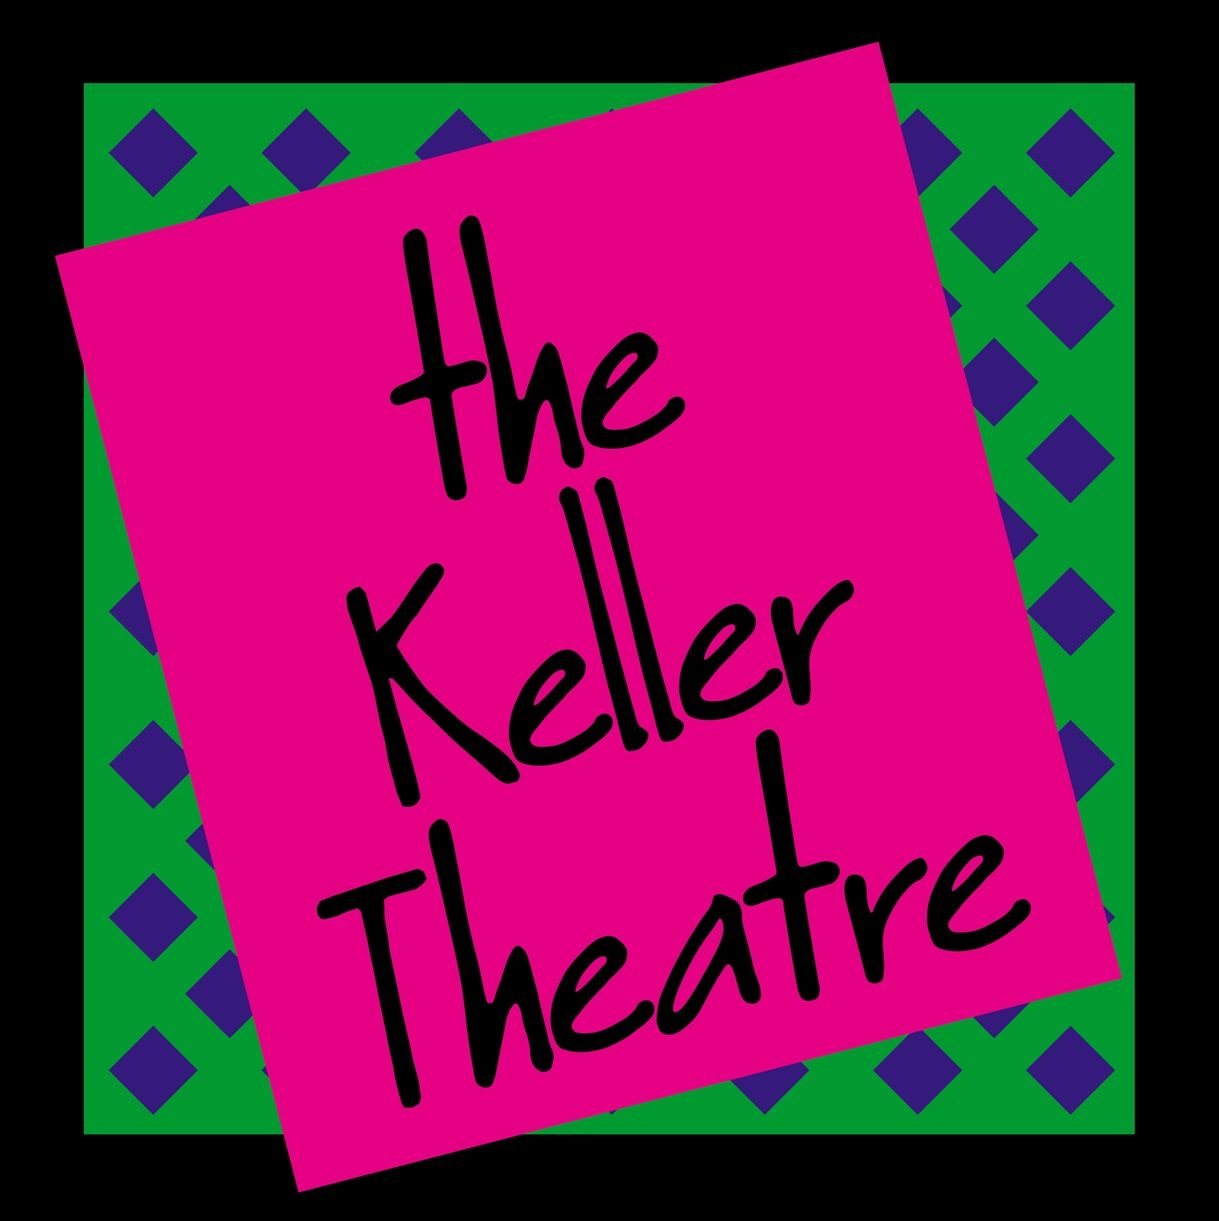 The Keller Theatre